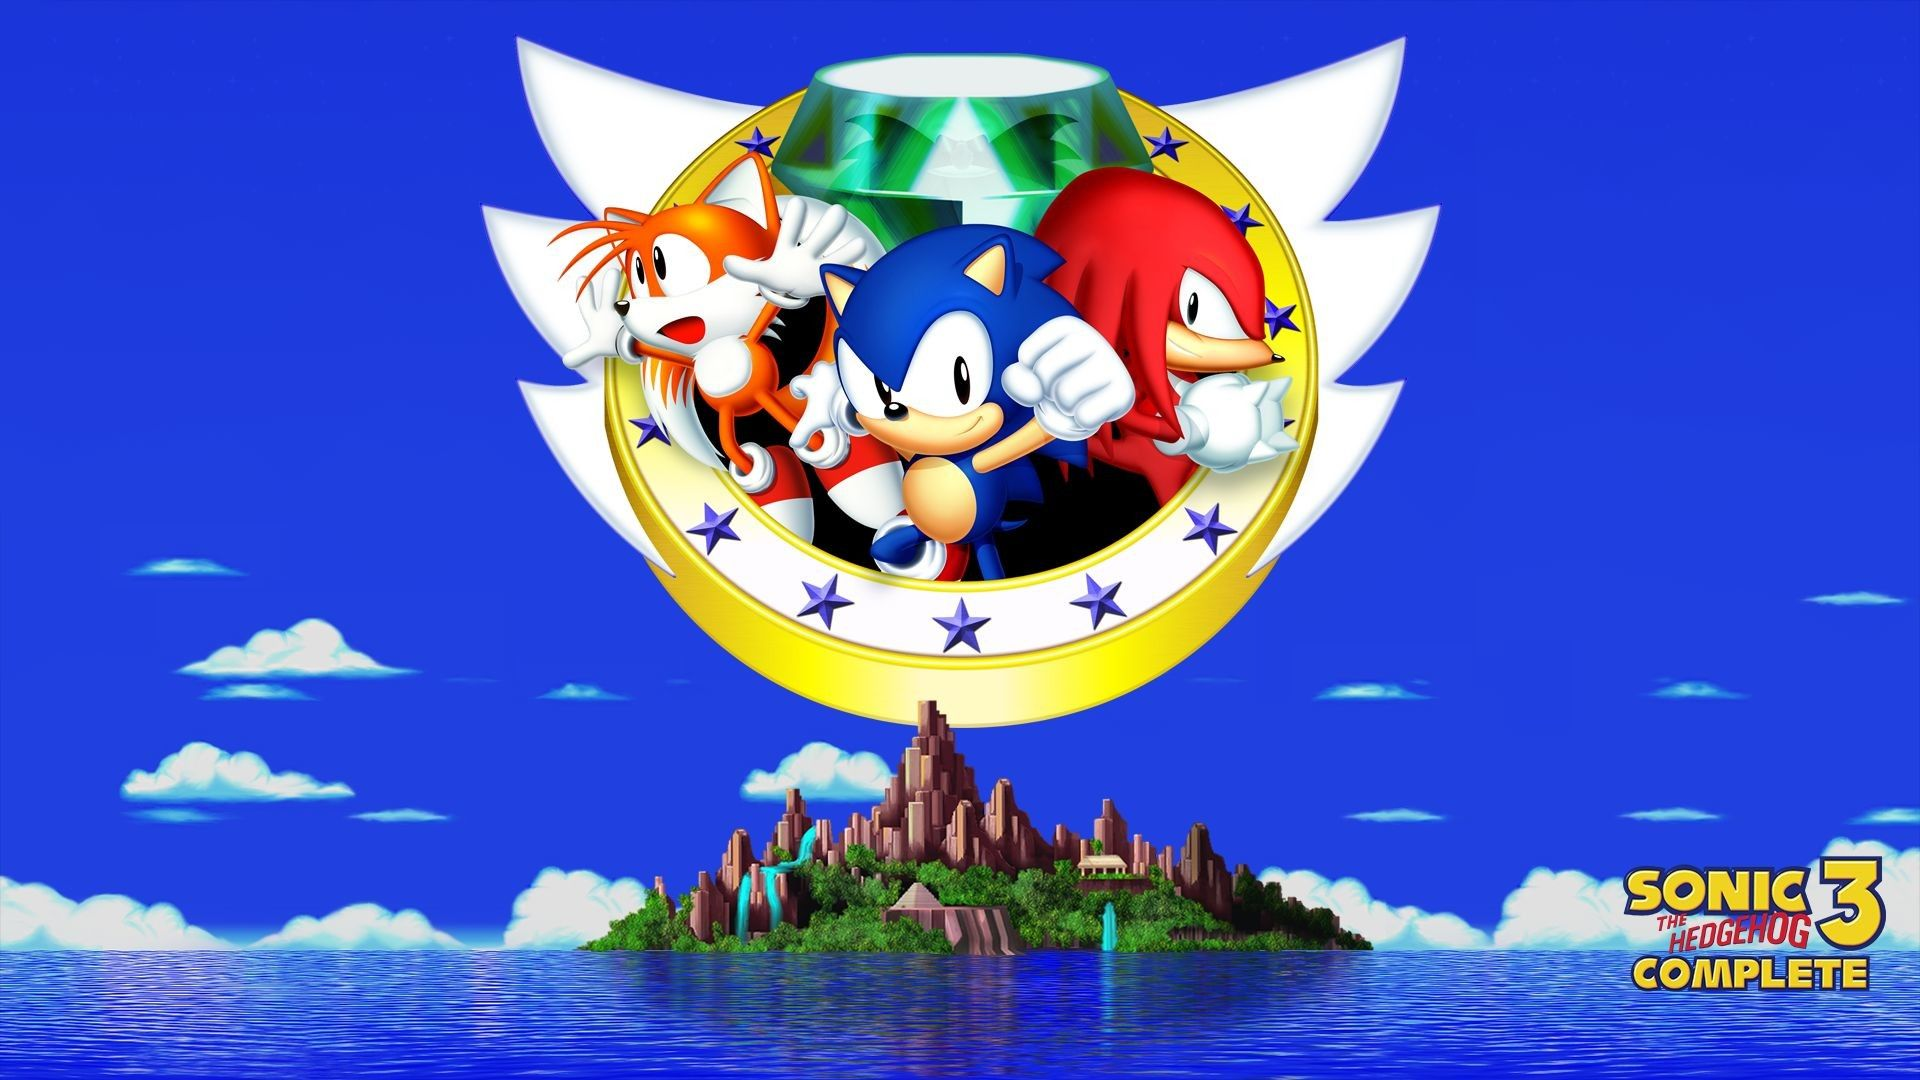 Classic Sonic Wallpapers Top Free Classic Sonic Backgrounds Wallpaperaccess